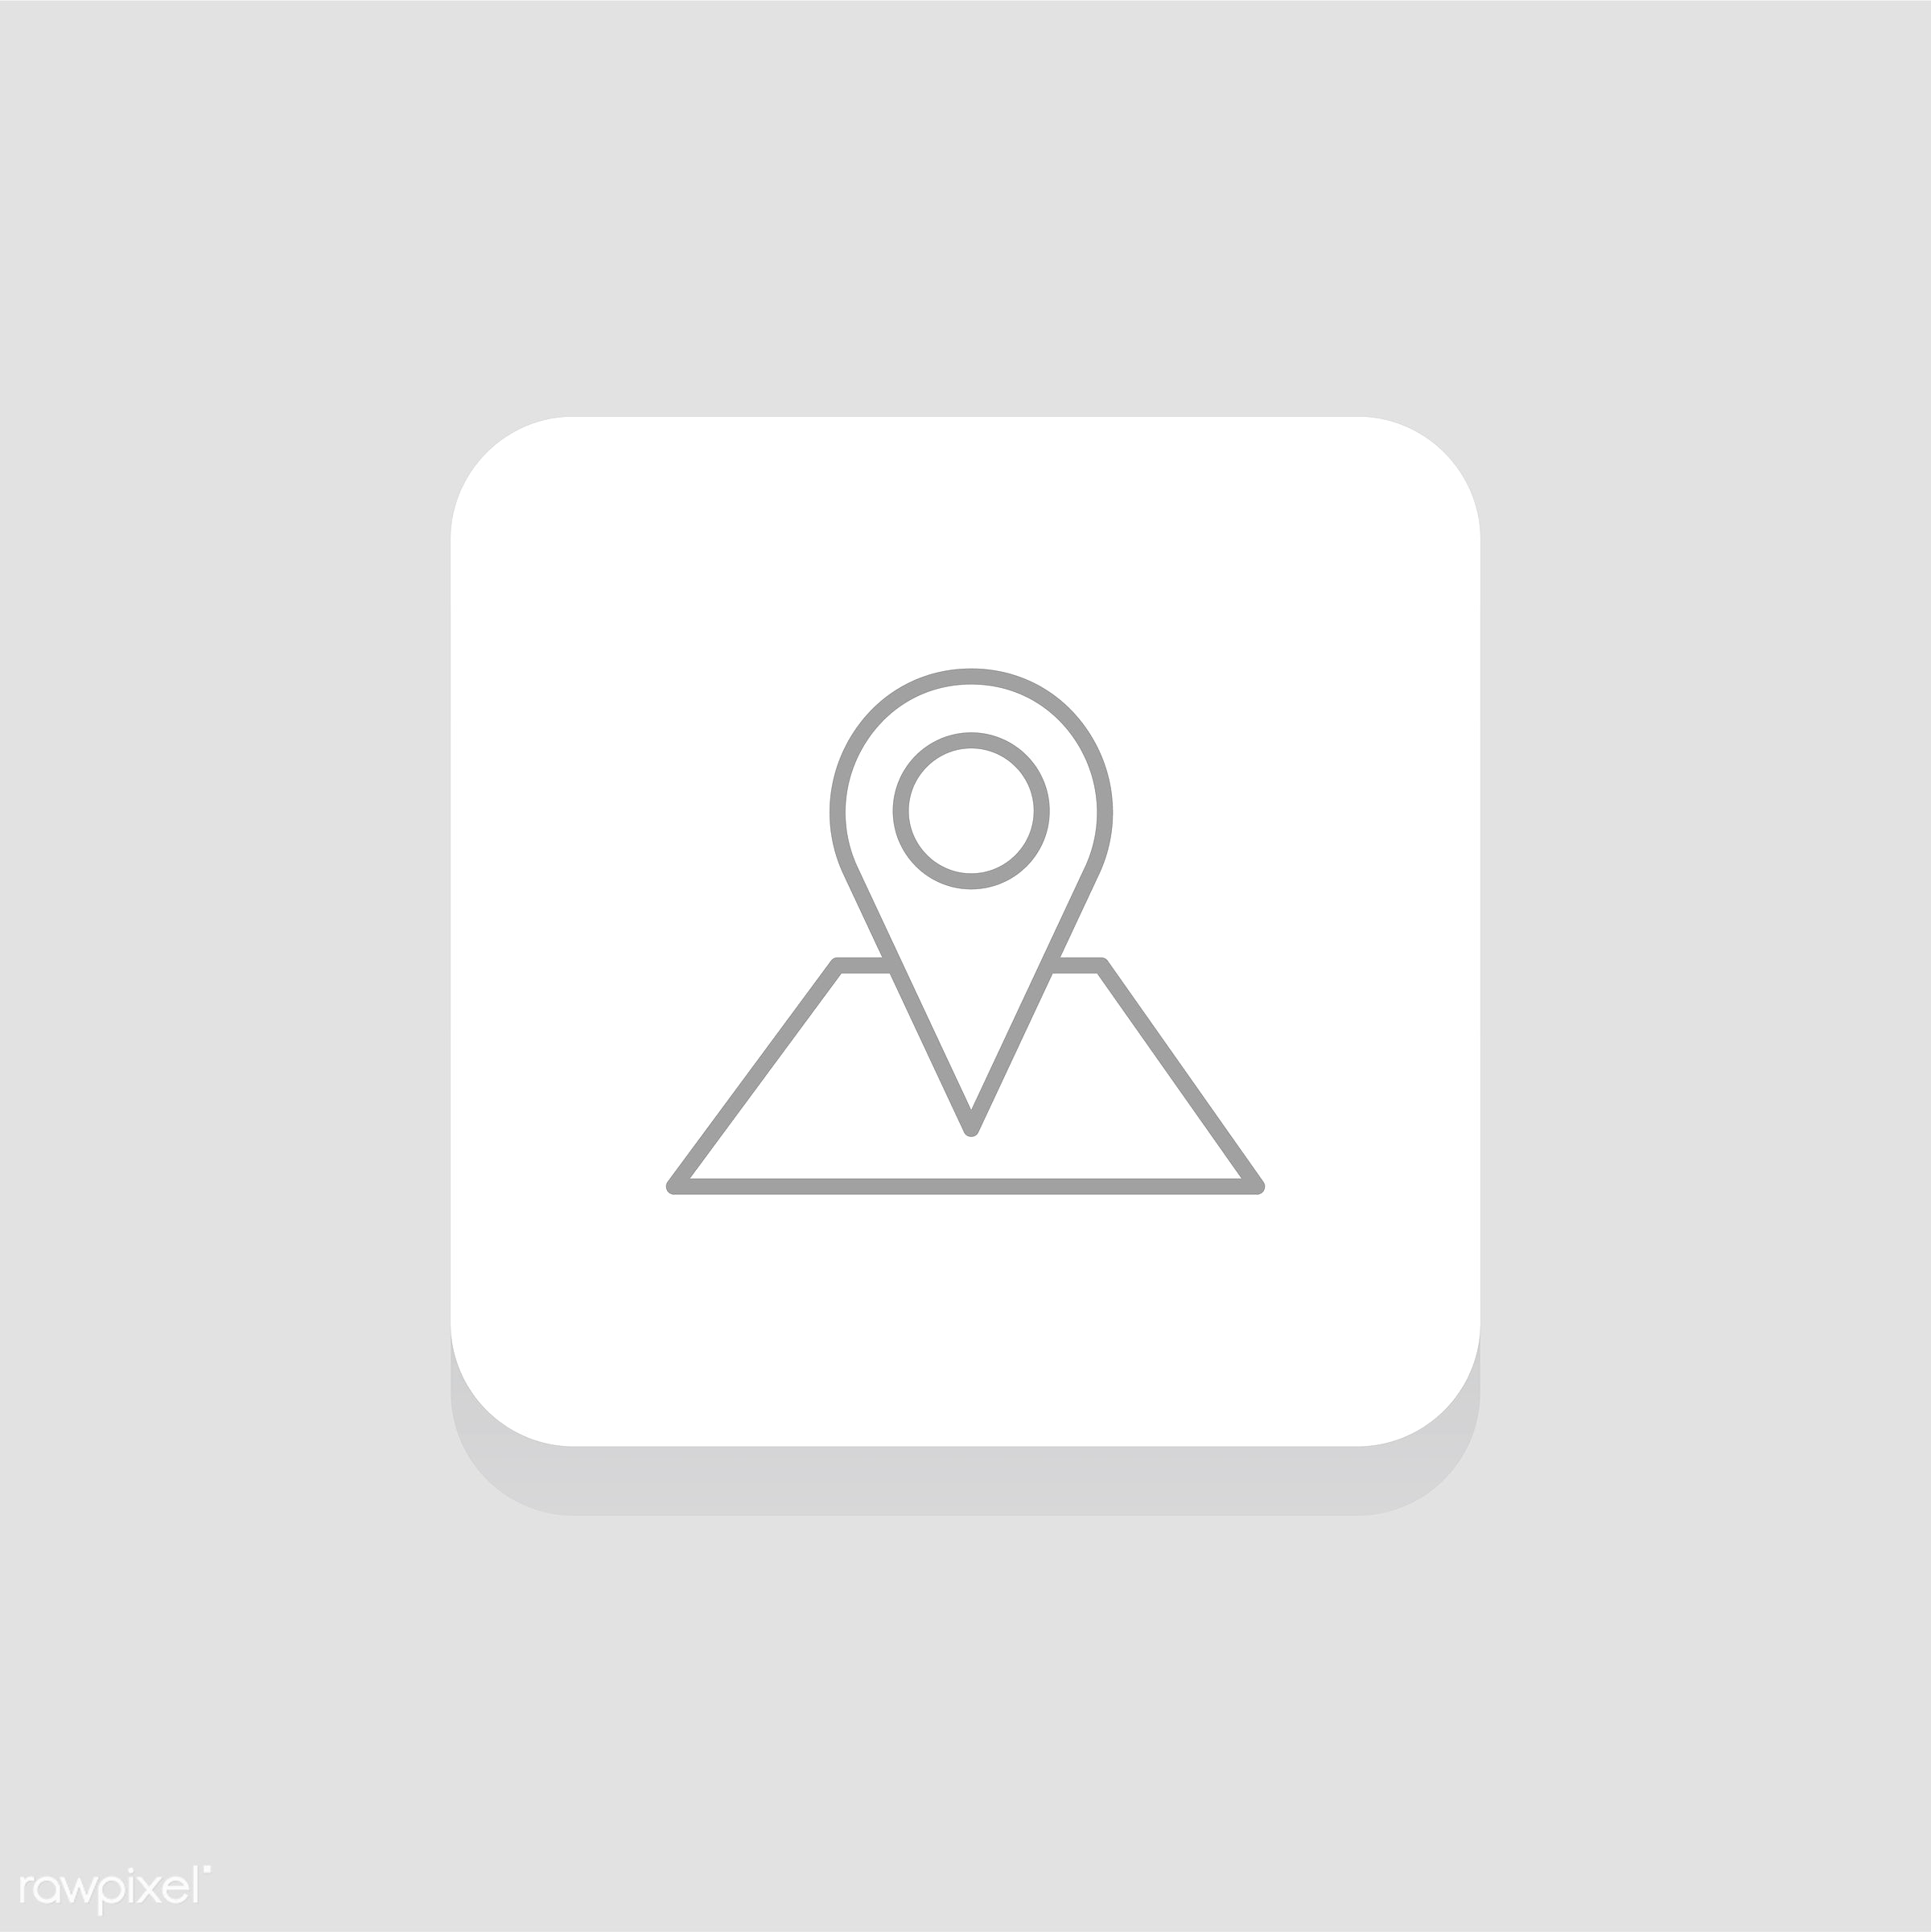 Vector of pin icon - design, flat, graphic, icon, illustration, isolated, layout, style, symbol, vector, website, click, map...